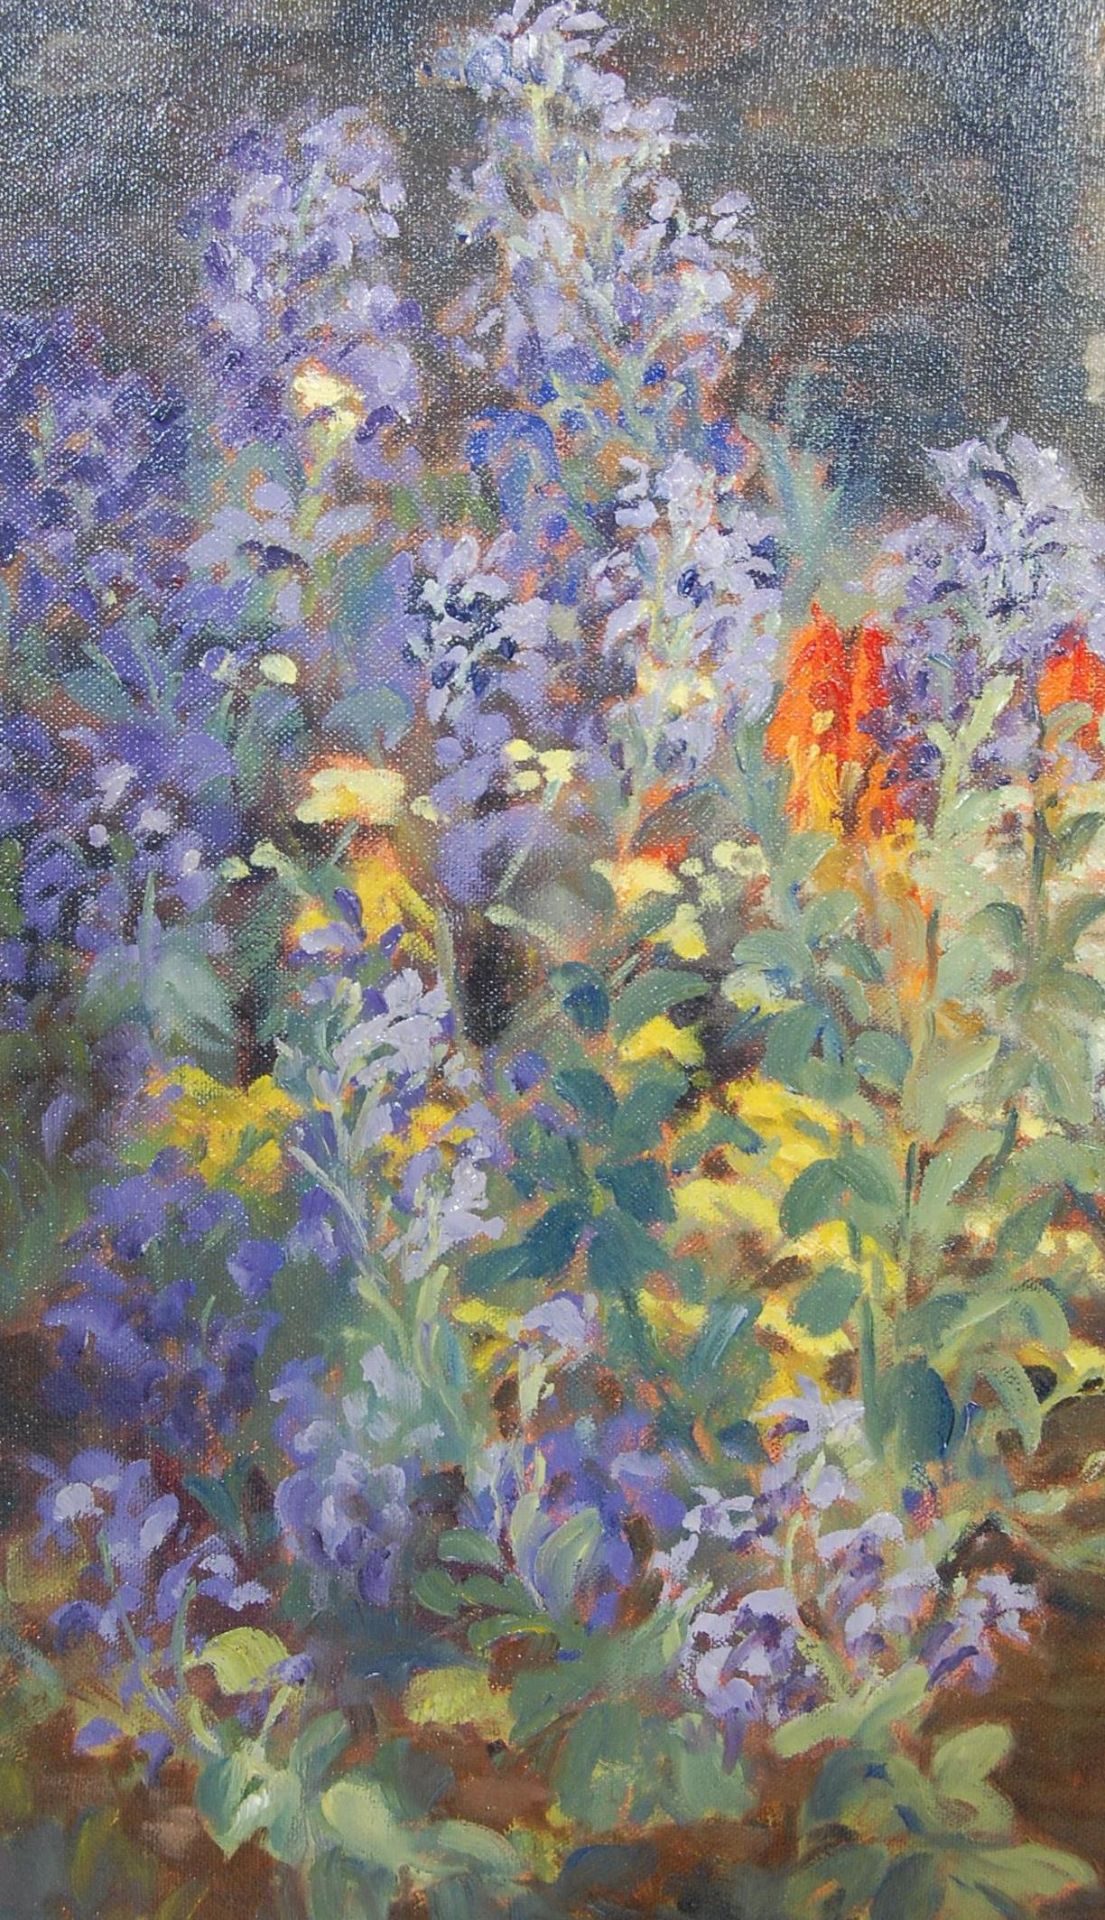 PAINTING BY LOCAL ARTIST - KEITH ELVIN - THE MIXED BORDER - Image 4 of 7